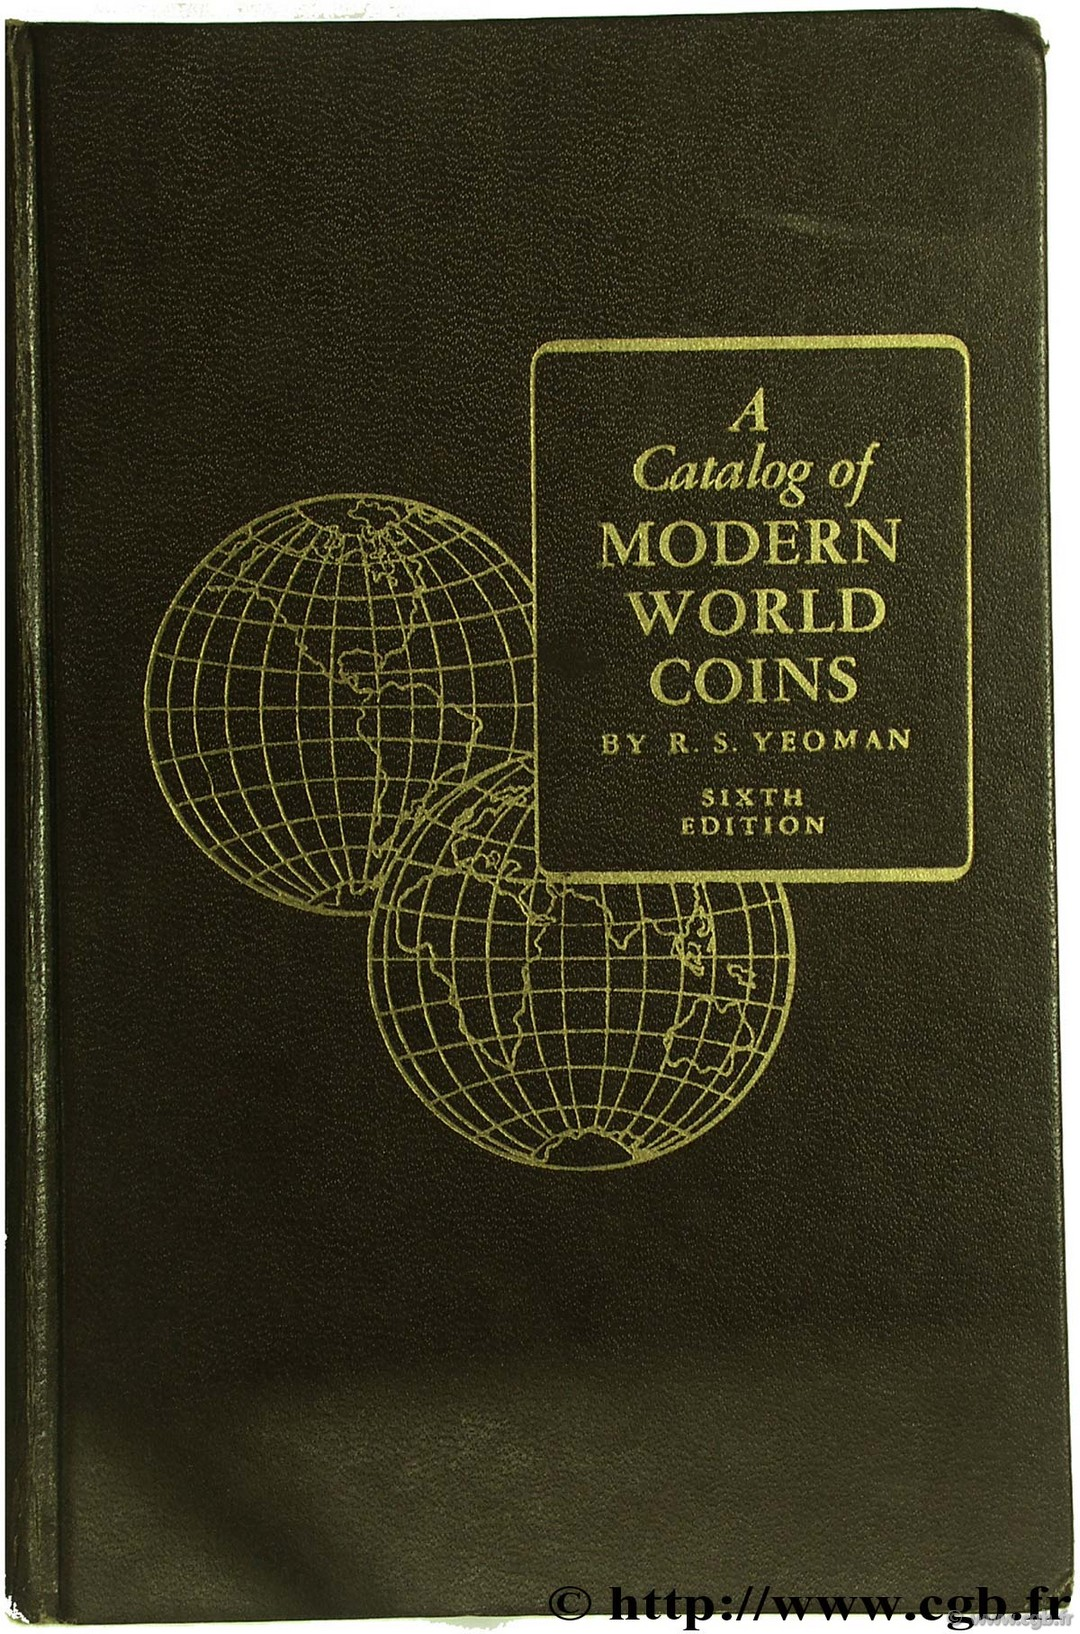 A catalog of Modern World Coins 1850-1964 first edition YEOMAN R.-S.